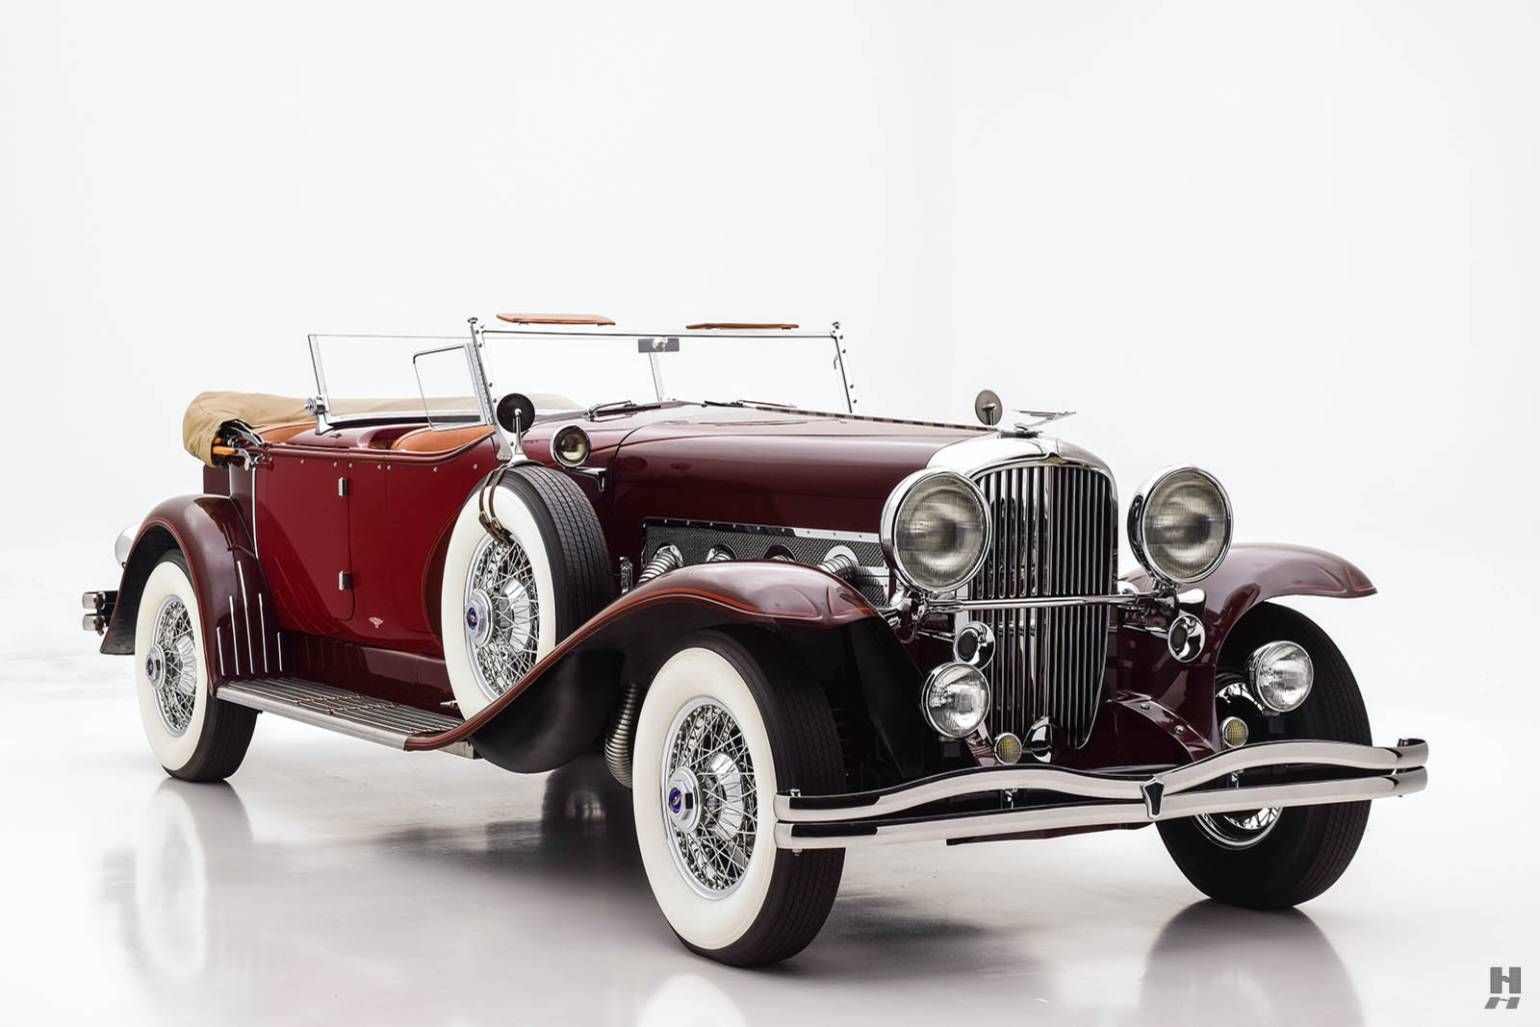 1982 Duesenberg Ii Royalton Dual Cowl Hemmings Motor News With Images Classic Cars Cars For Sale Royalton